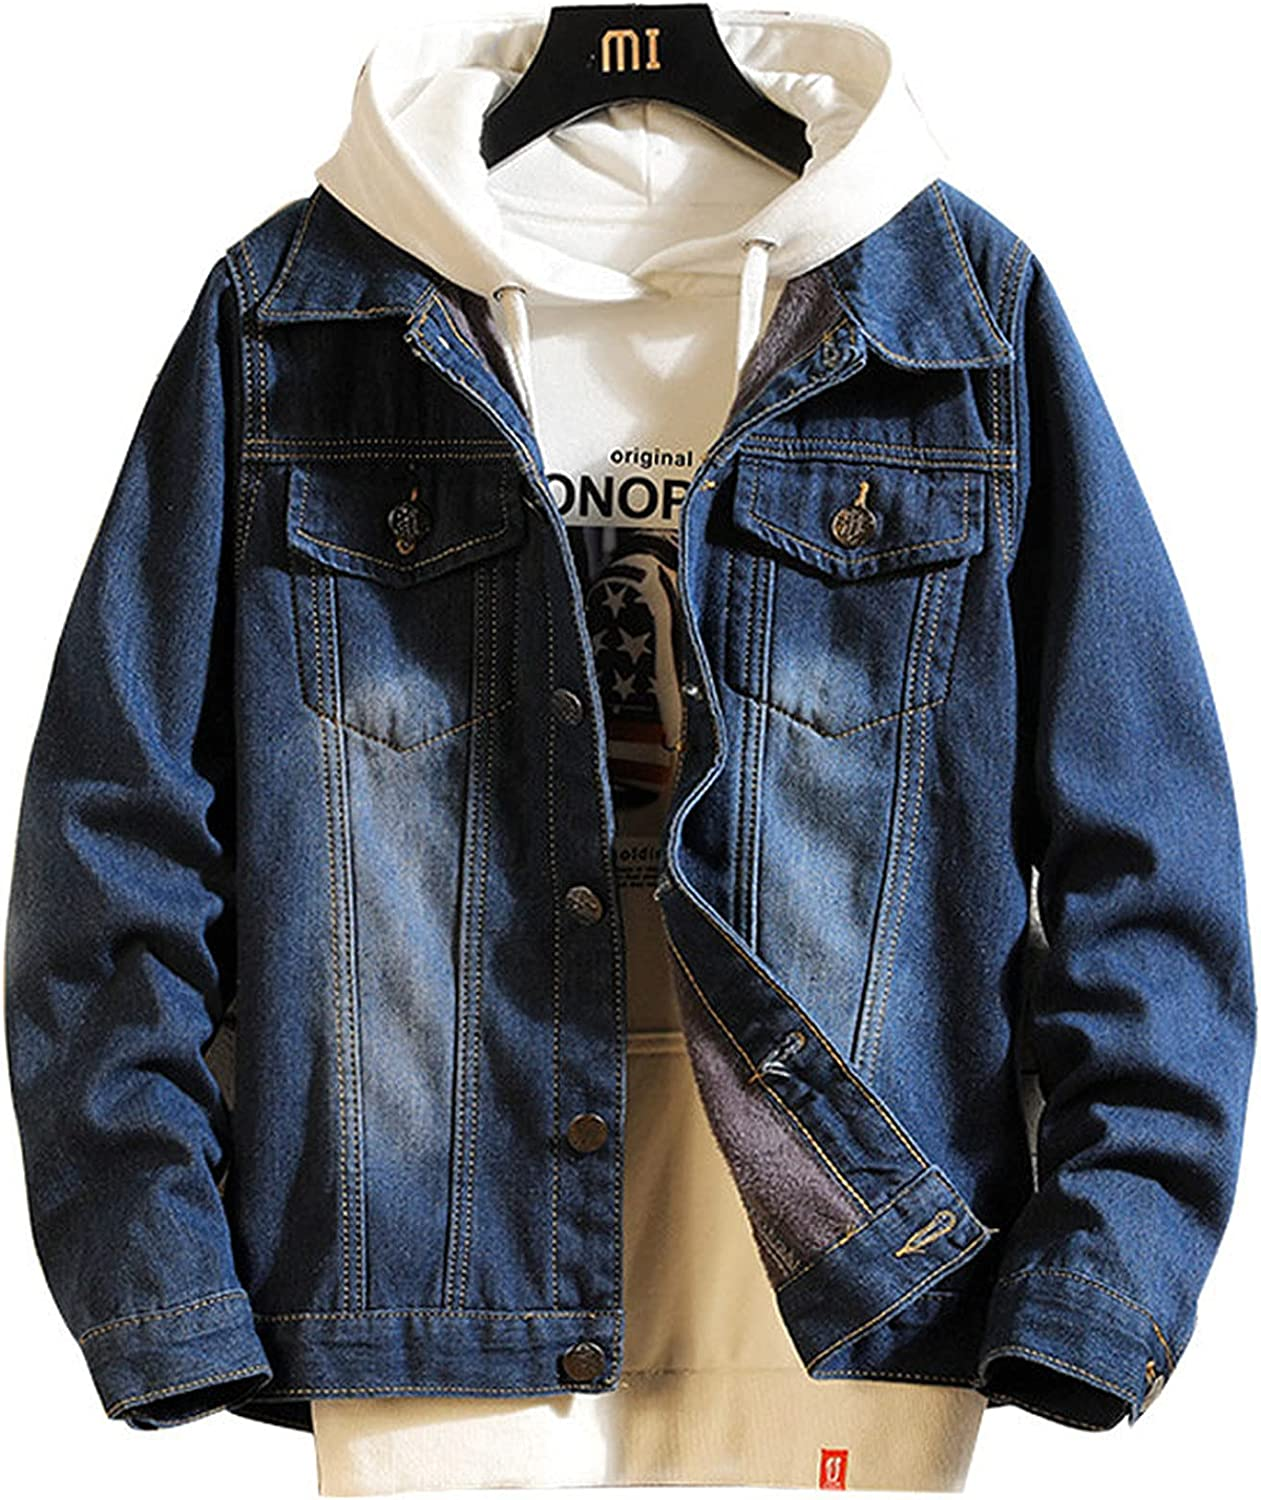 Men's Denim Thick Jacket with Button Warm Sherpa Lined Motorcycle Fashion Coat Top Hip Hop Outwear Winter Jacket